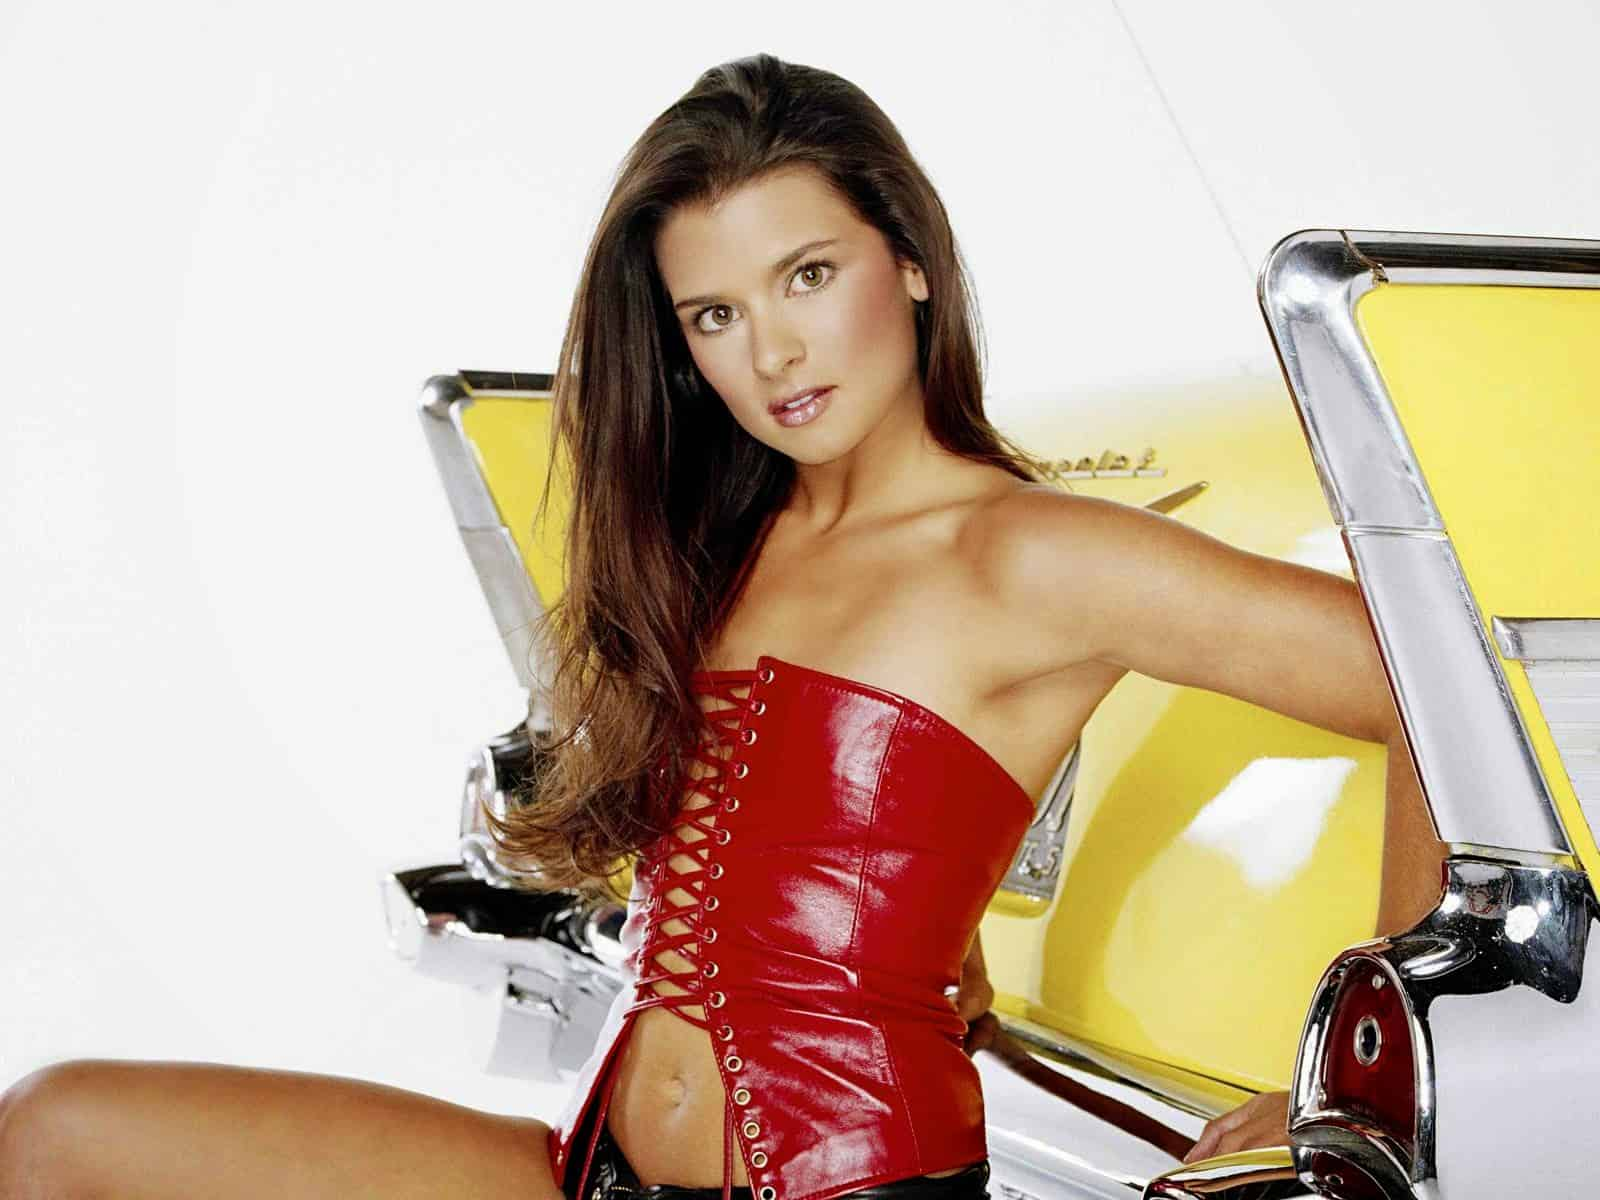 Every list of hot car girls includes Danika Patrick